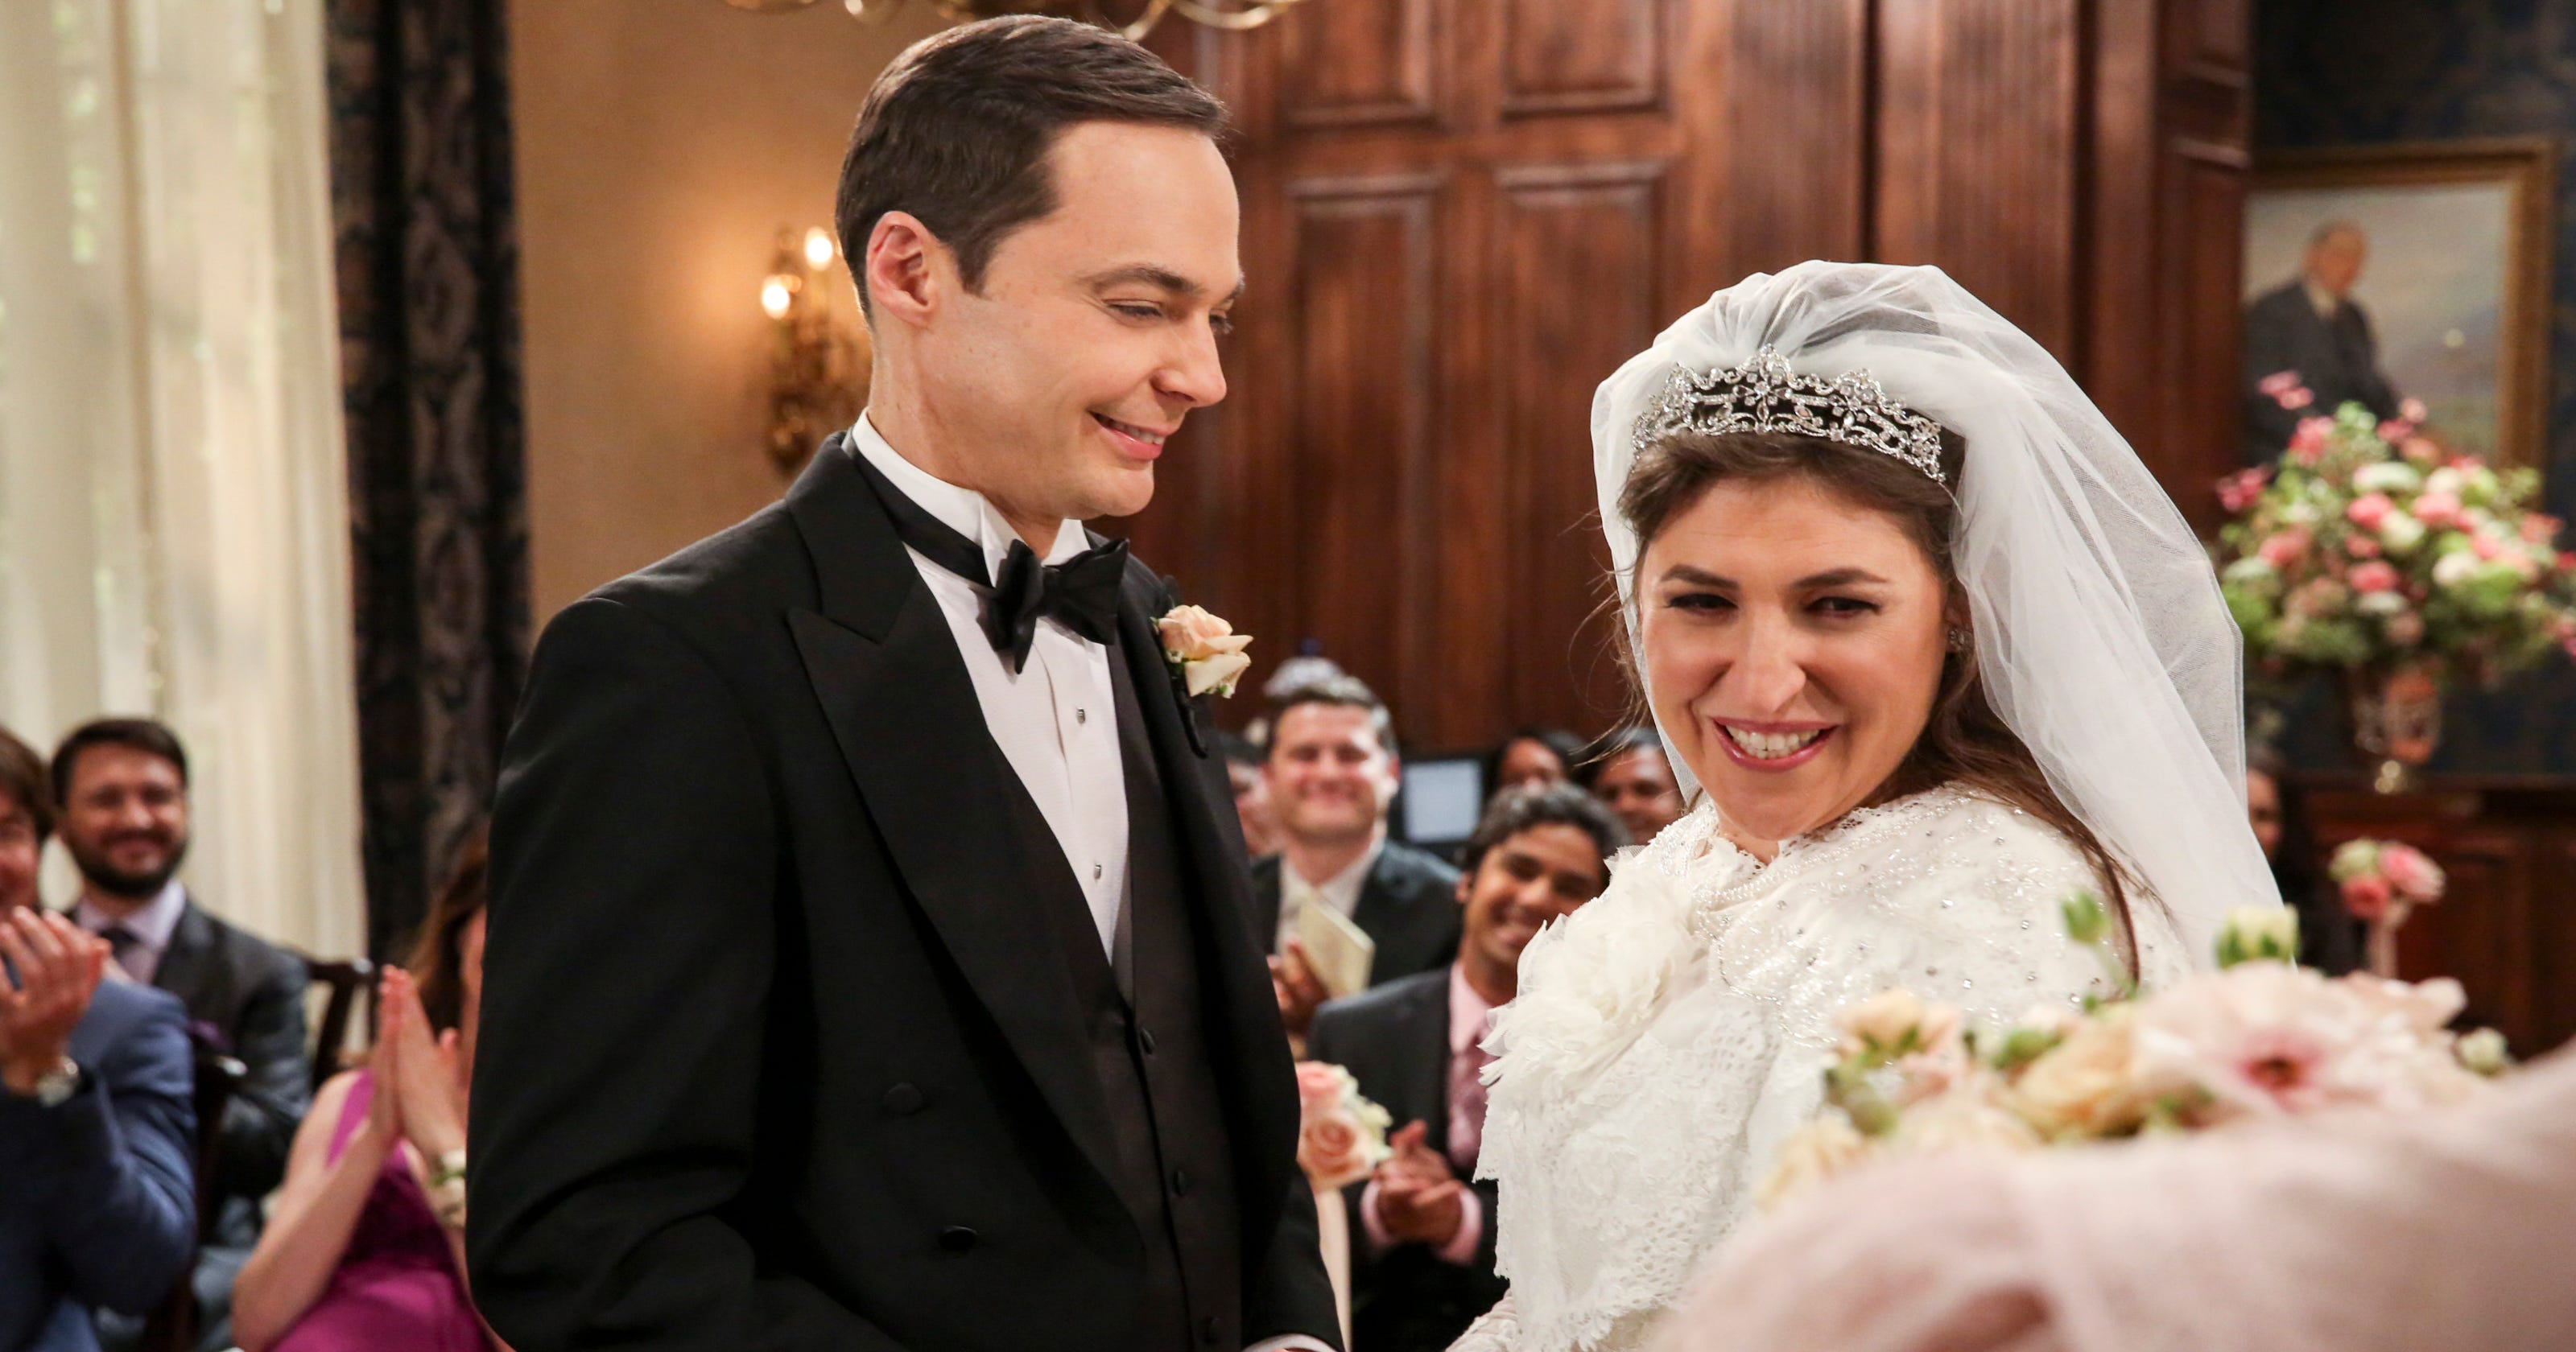 Sheldon And Amy Wedding.5 Things You Don T Know About The Big Bang Theory Wedding Finale